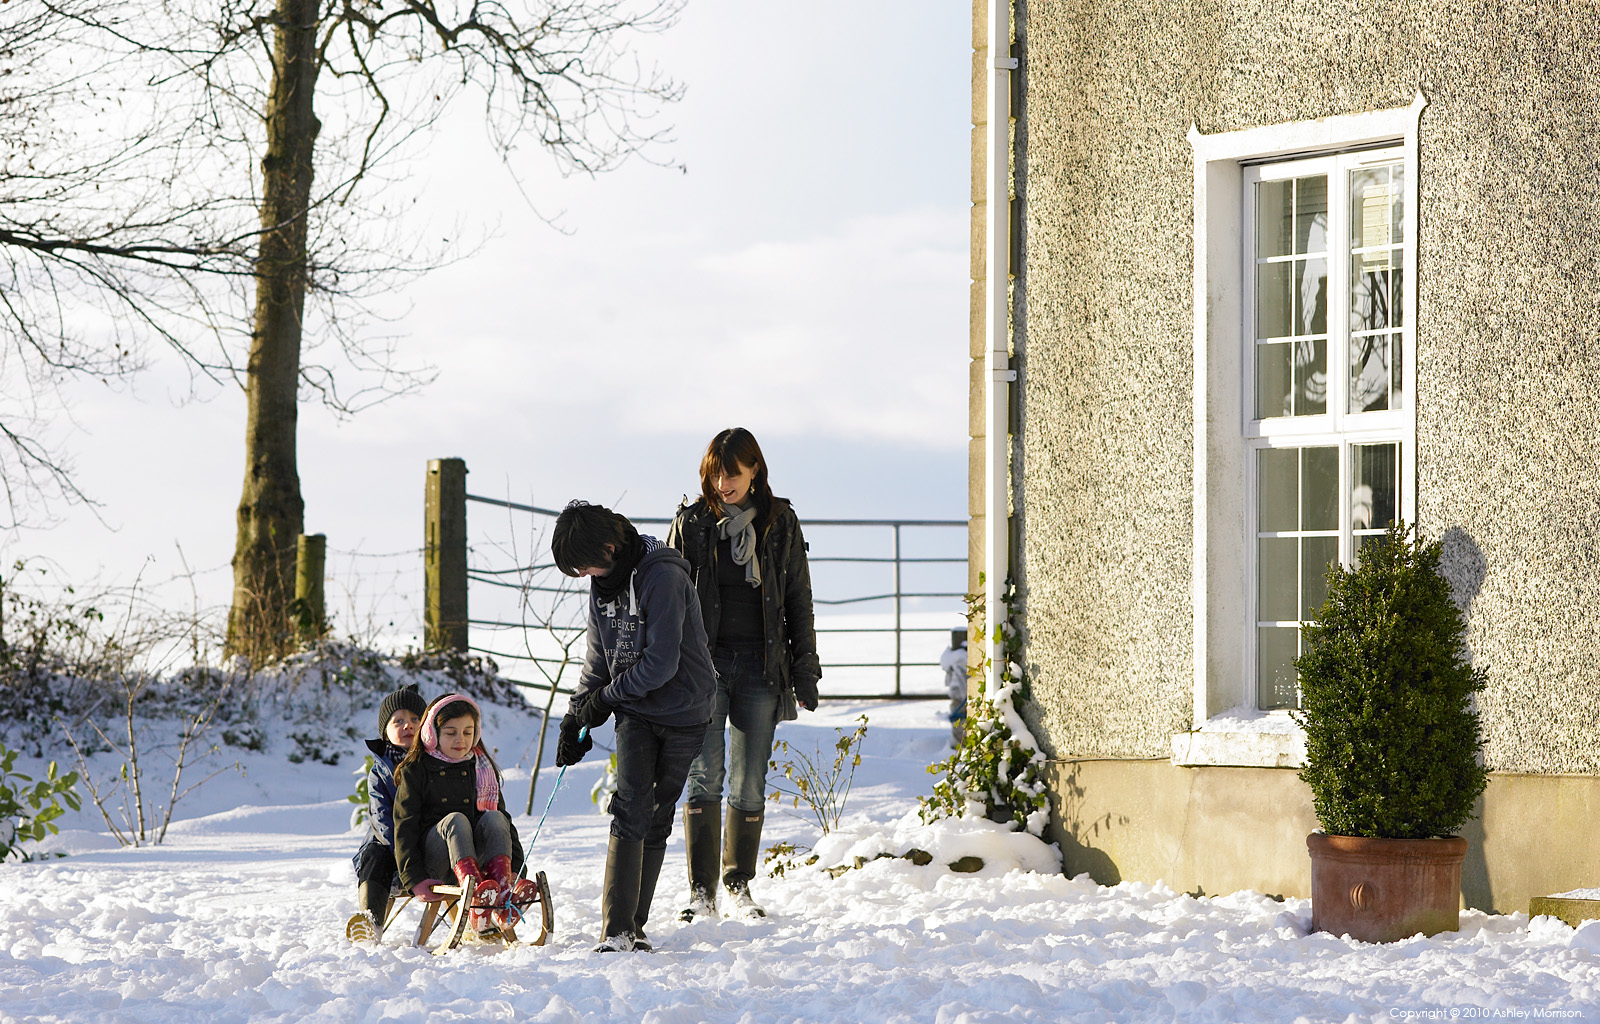 Nicola Nemec and her childern playing in the snow at their farmhouse near Armoy in Co Antrim.